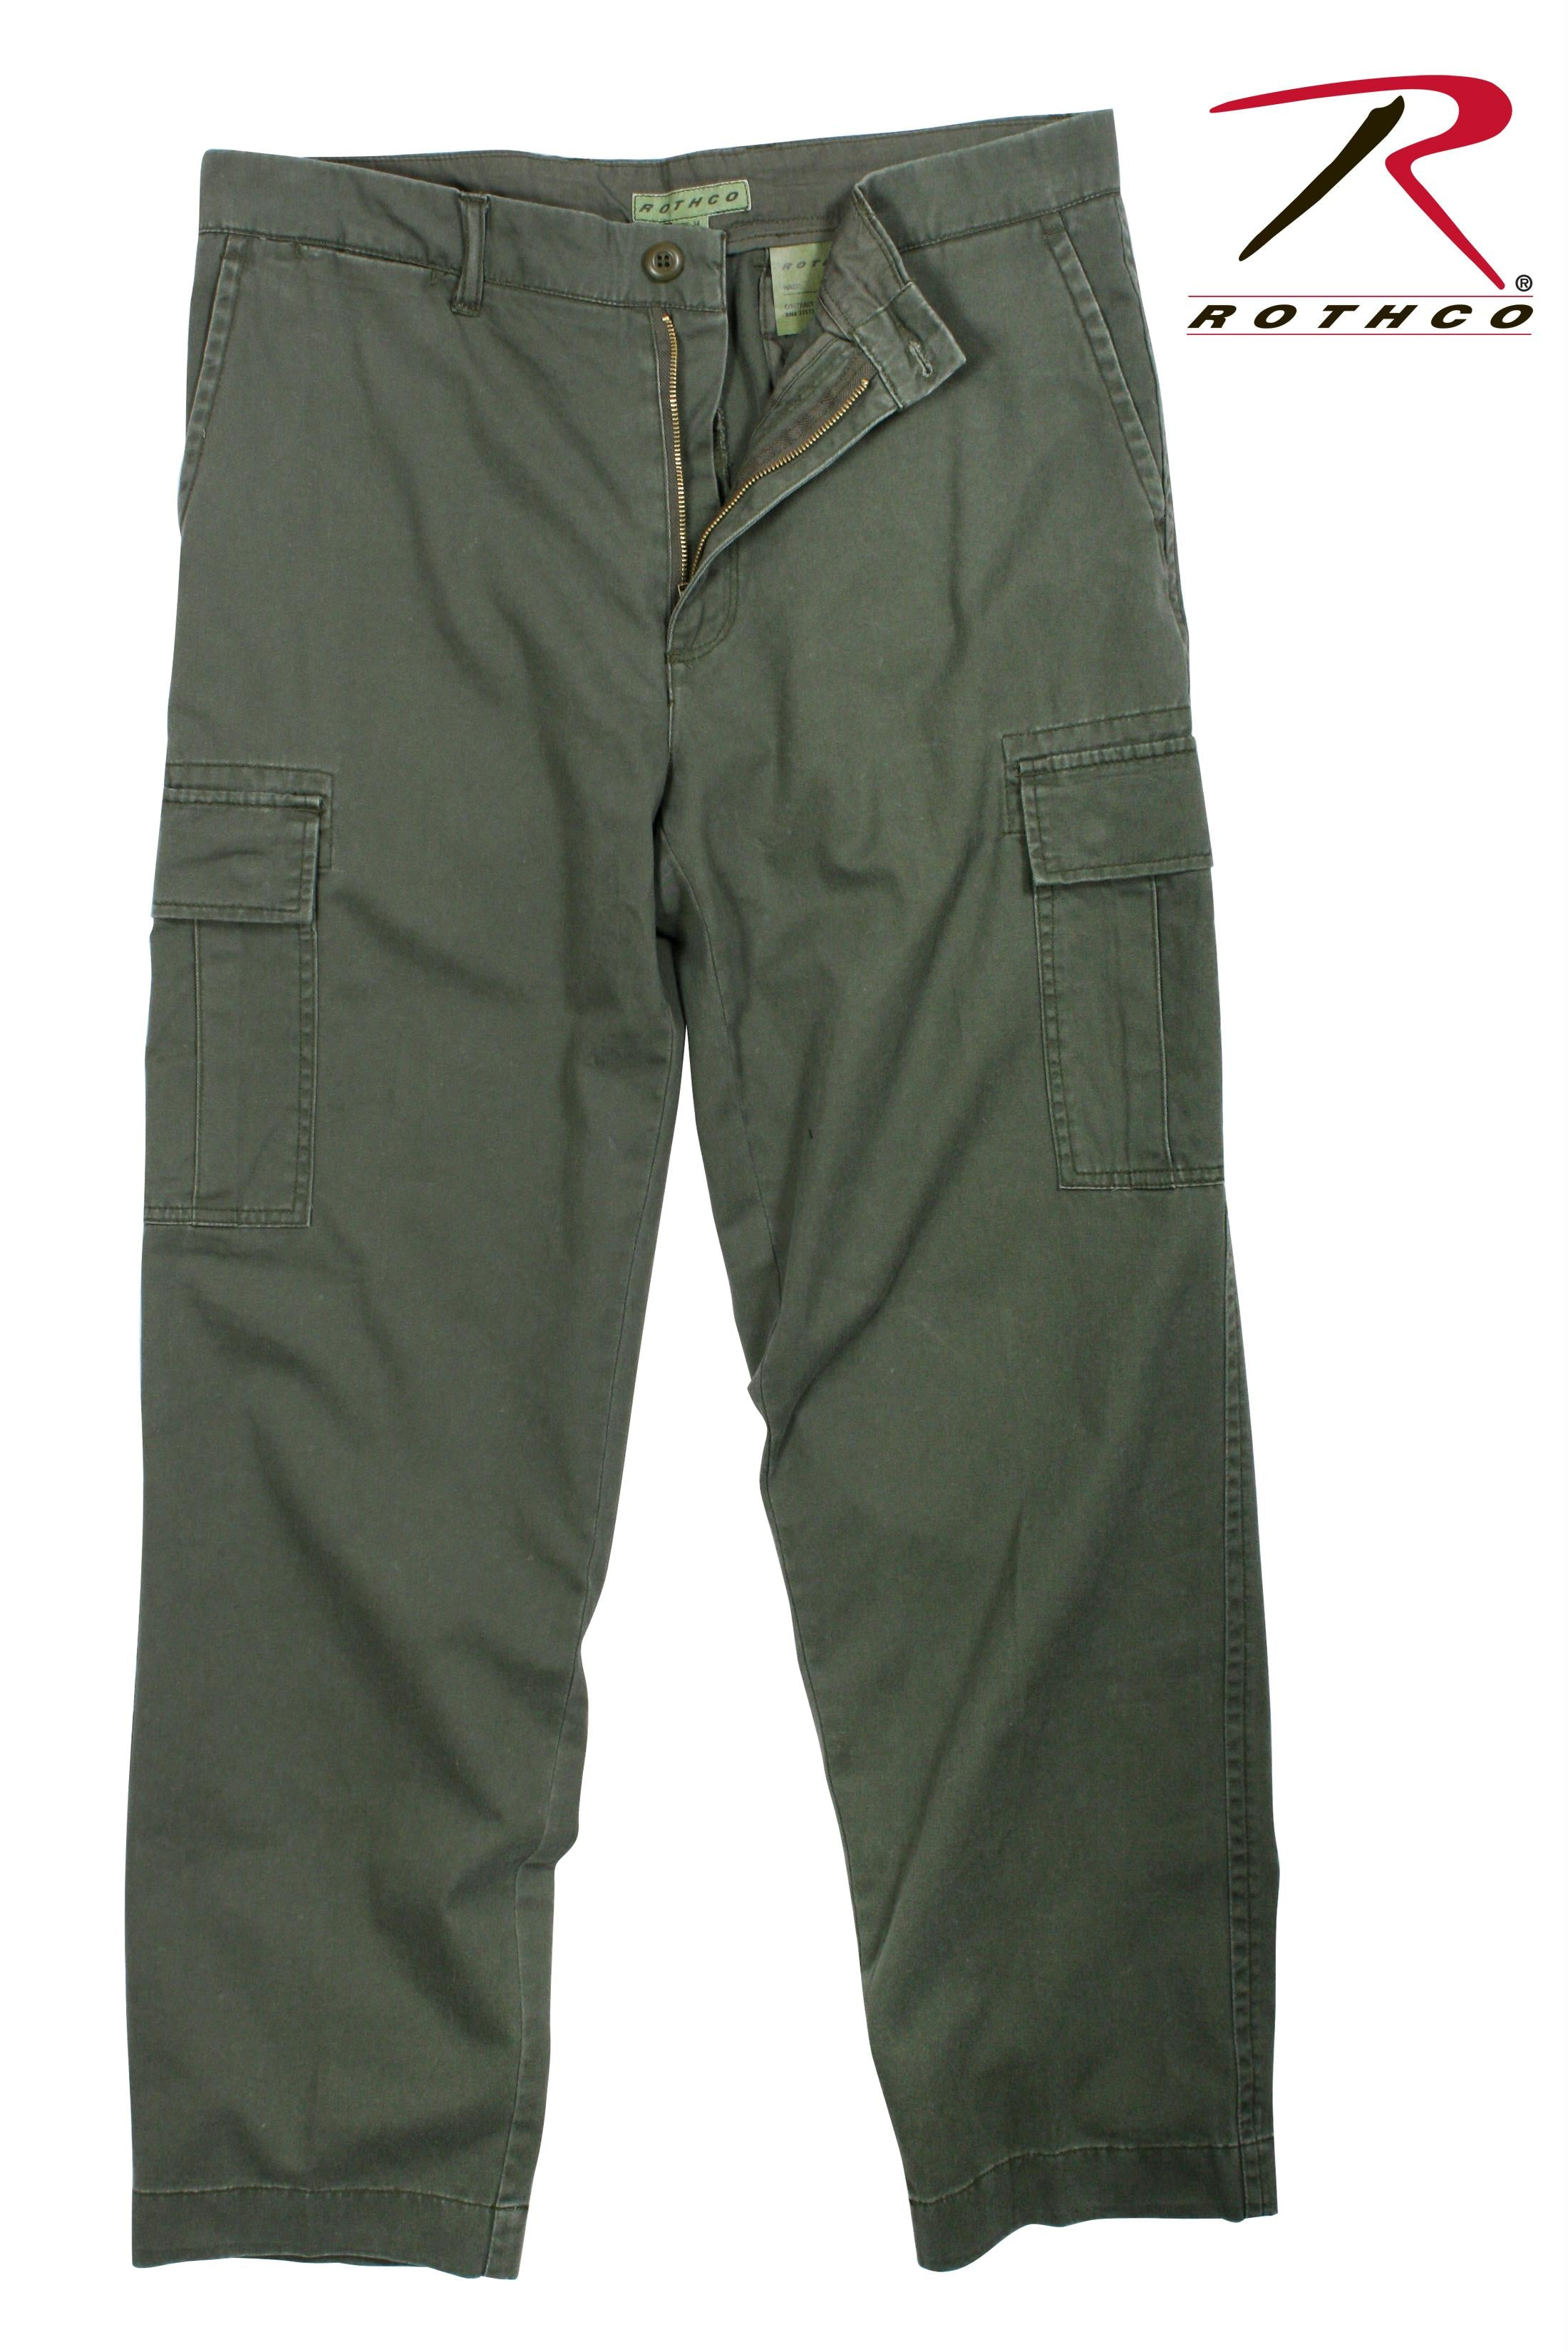 Rothco Vintage 6-Pocket Flat Front Fatigue Pants - Olive Drab / 36